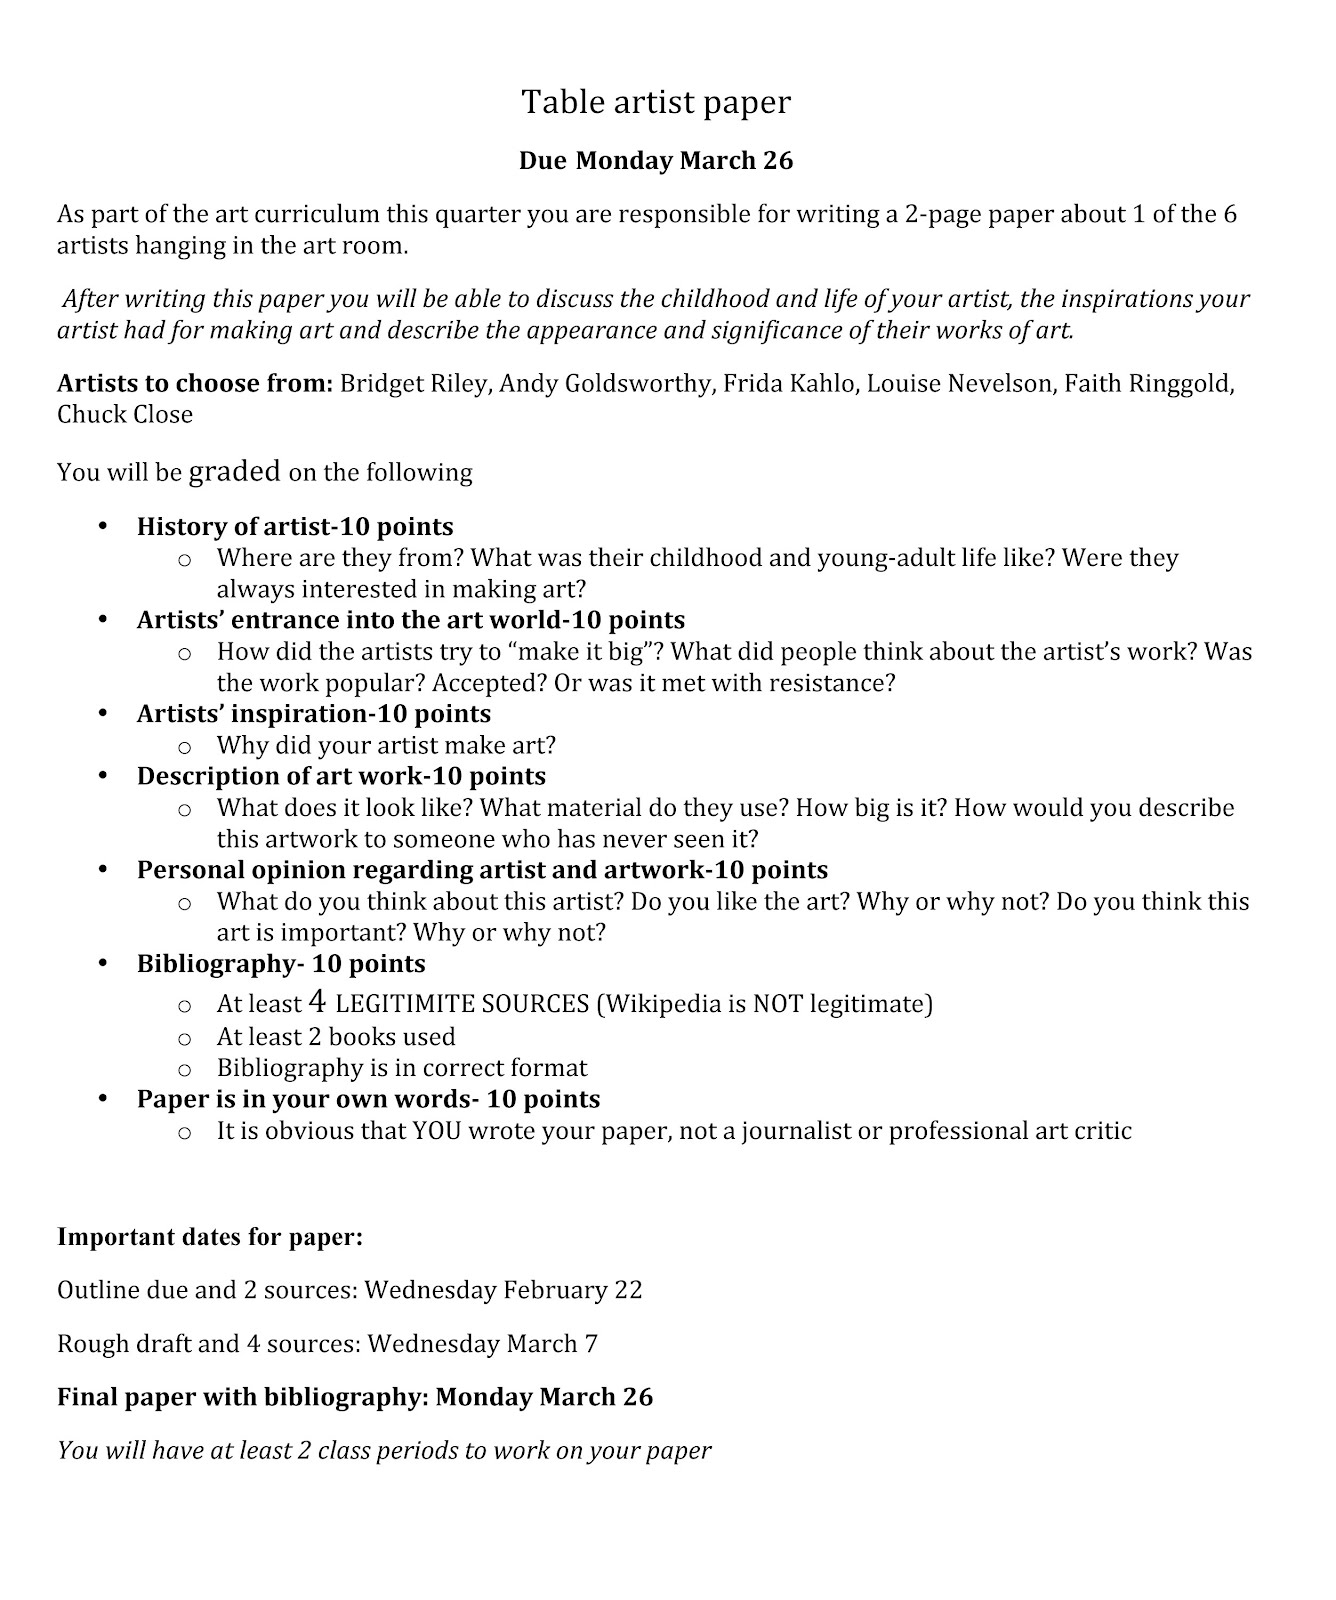 006 Good History Topics For Researchs Table20artist20paper Striking Research Papers Best Interesting Paper Us Full